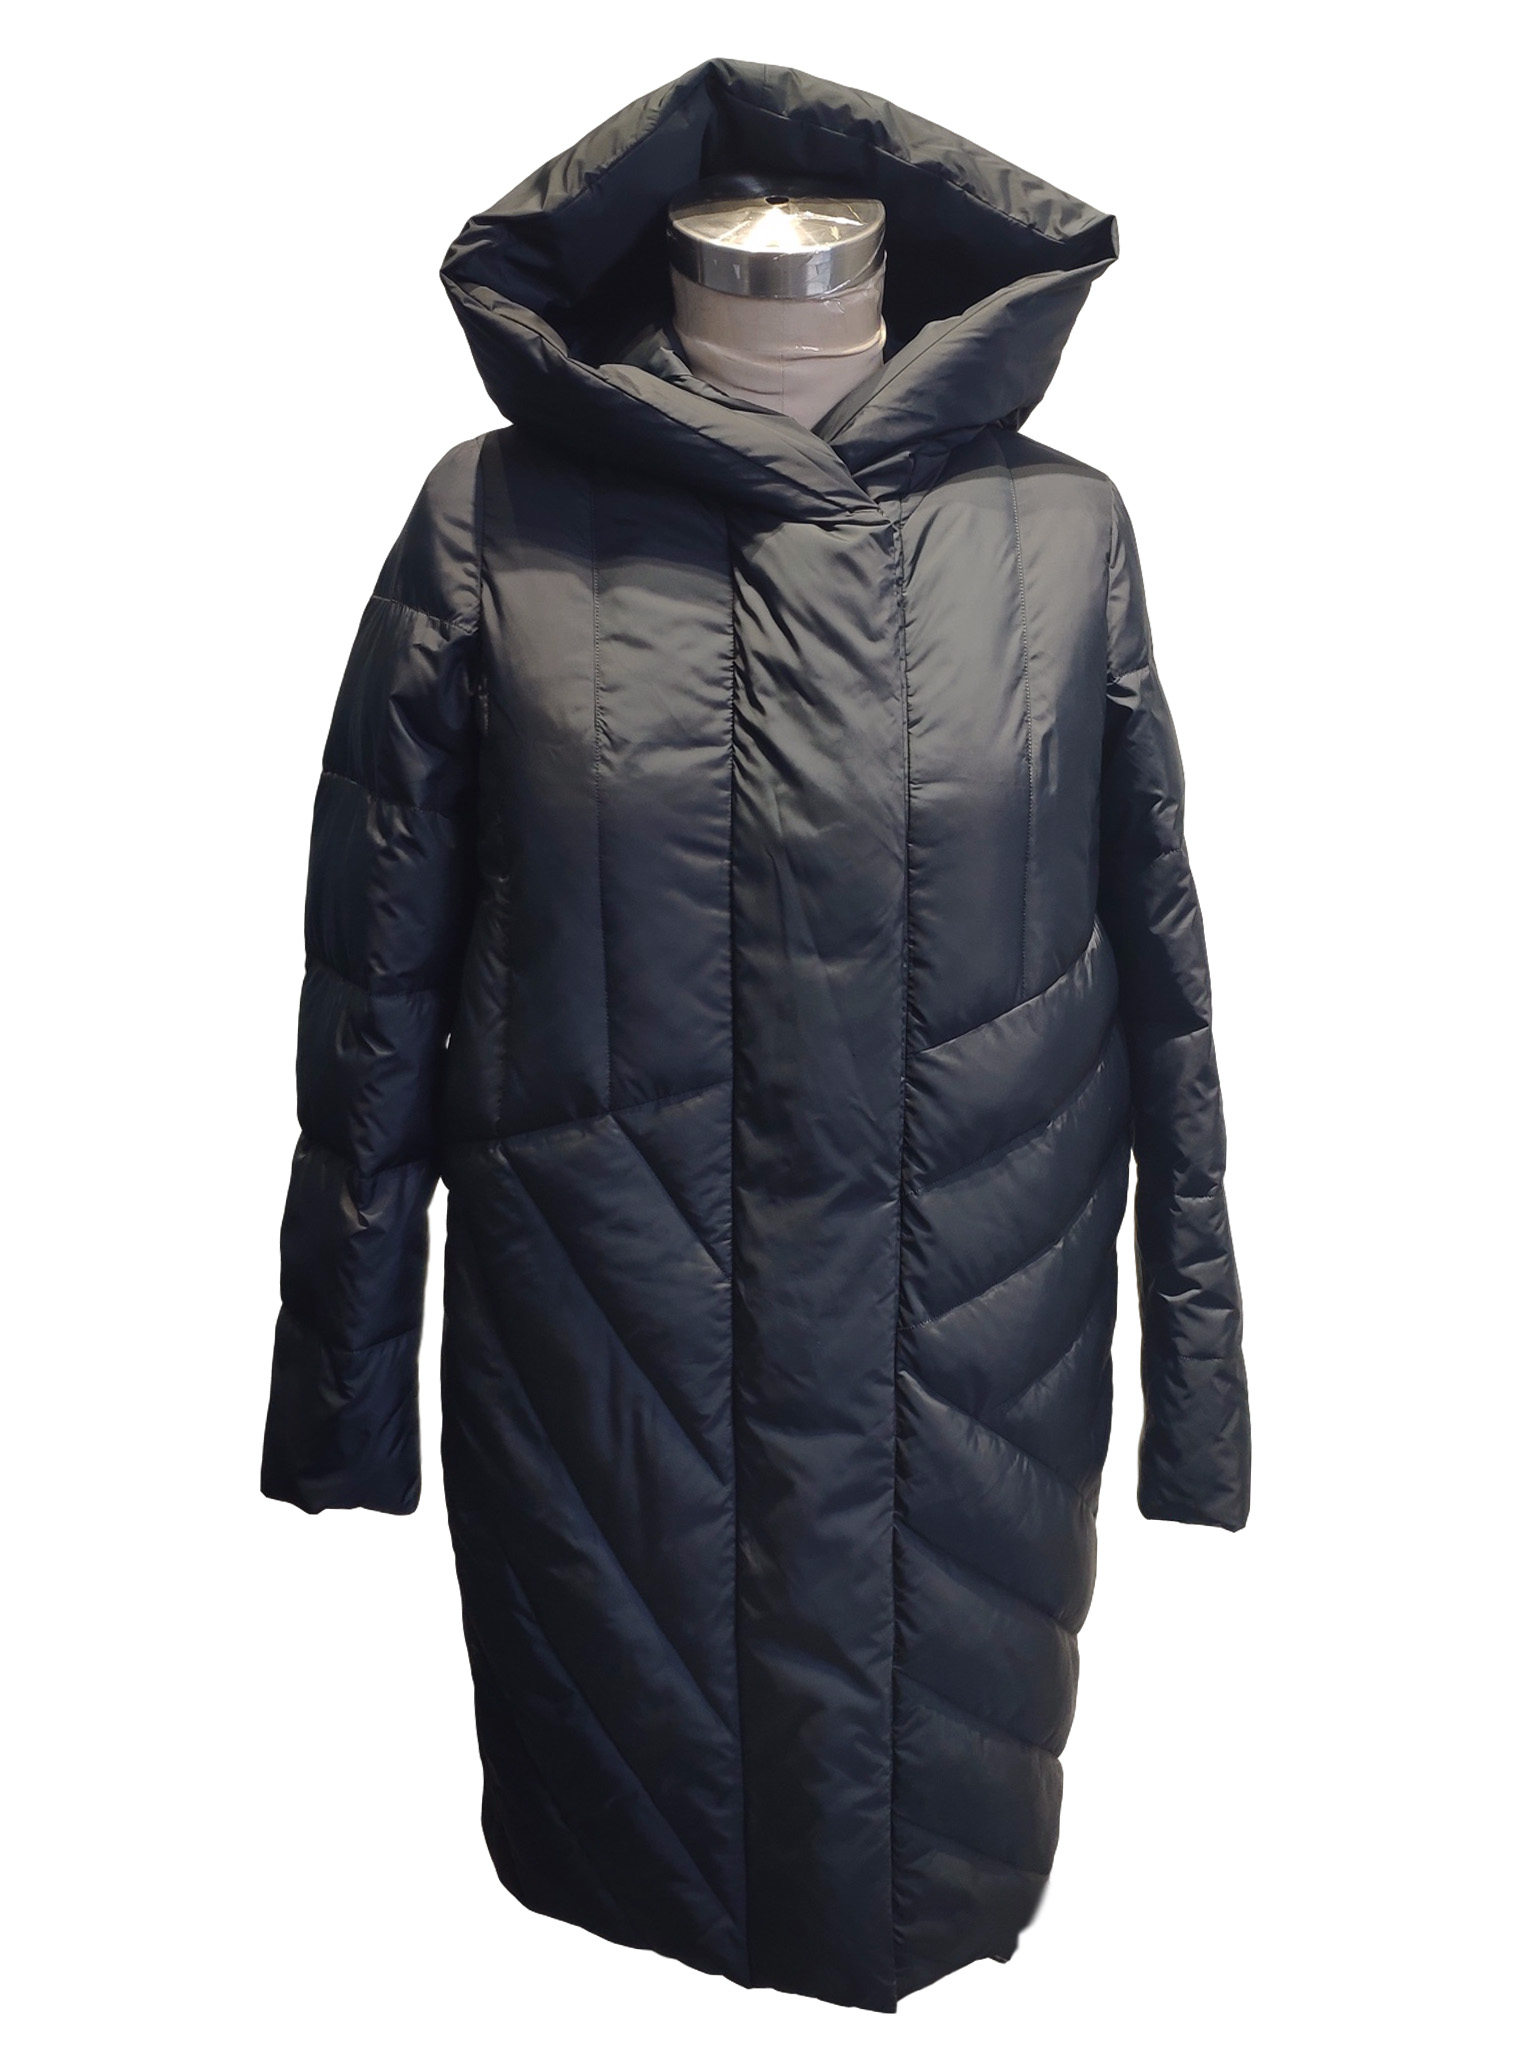 womens down jacket price